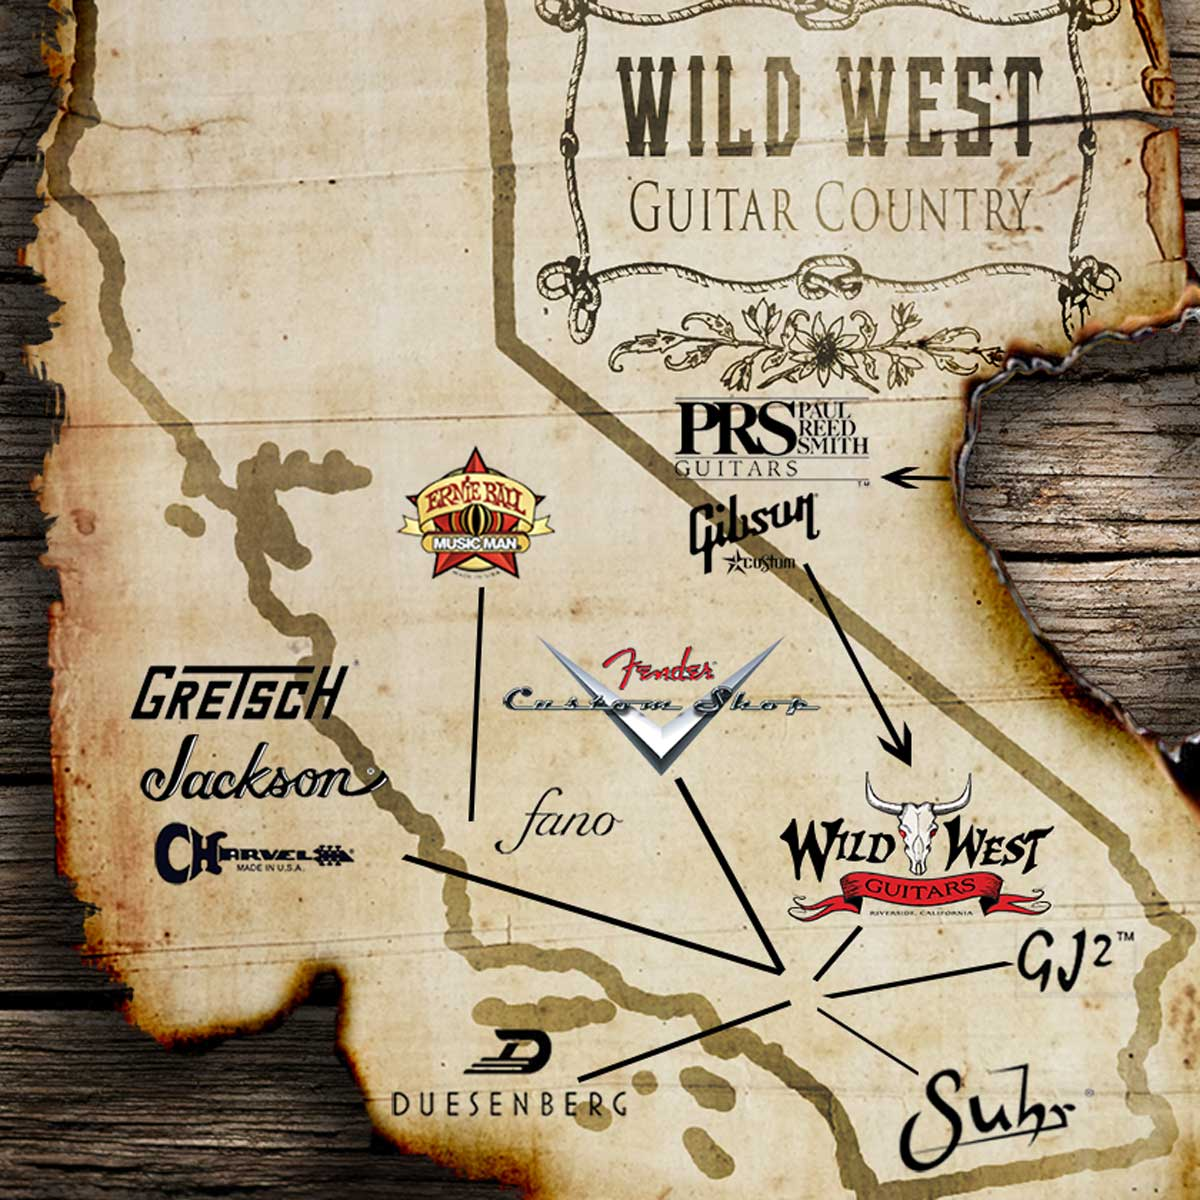 Wild West Guitars - Guitar Country